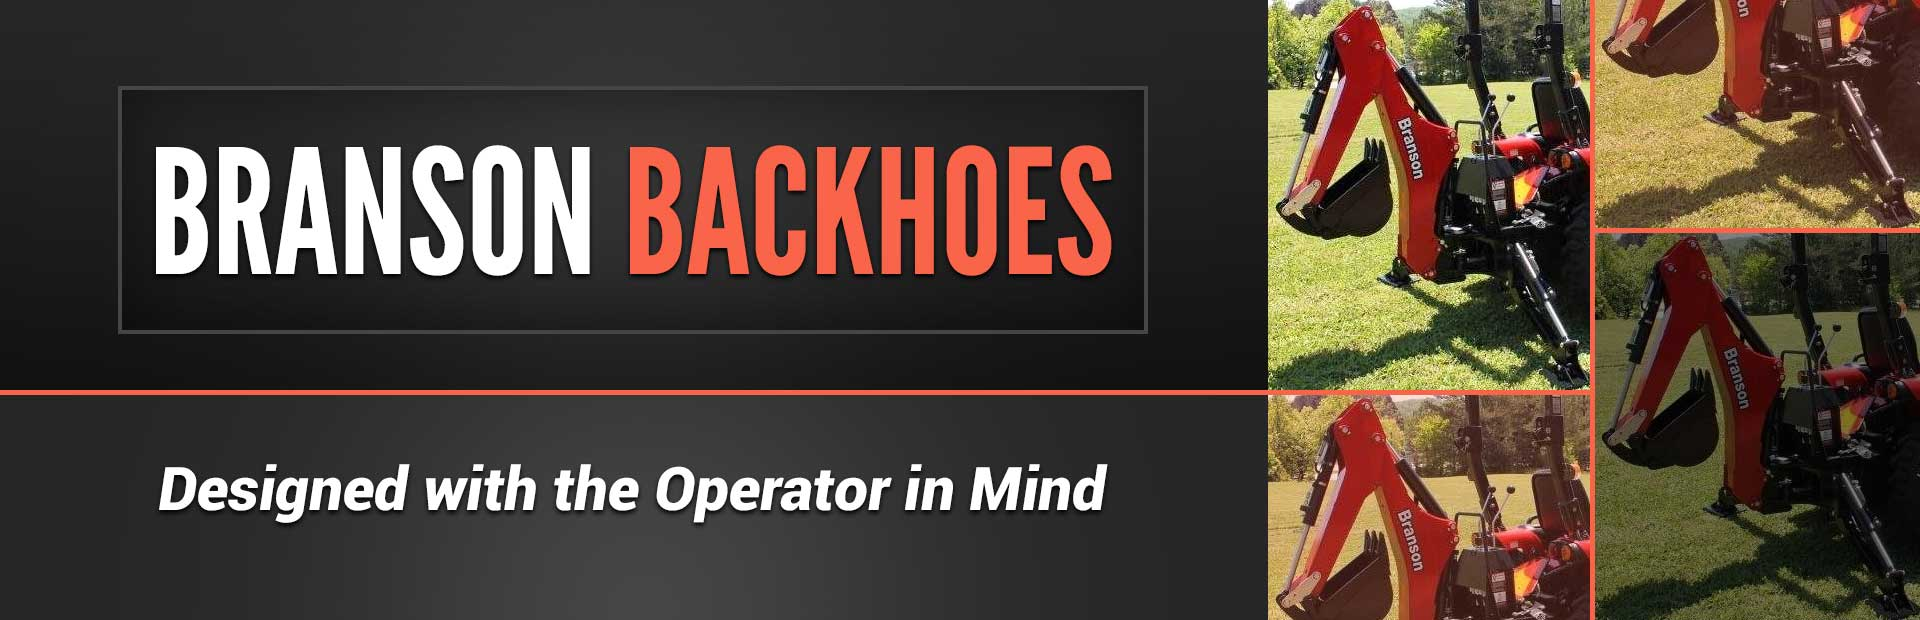 Branson Backhoes: Click here to view the models.